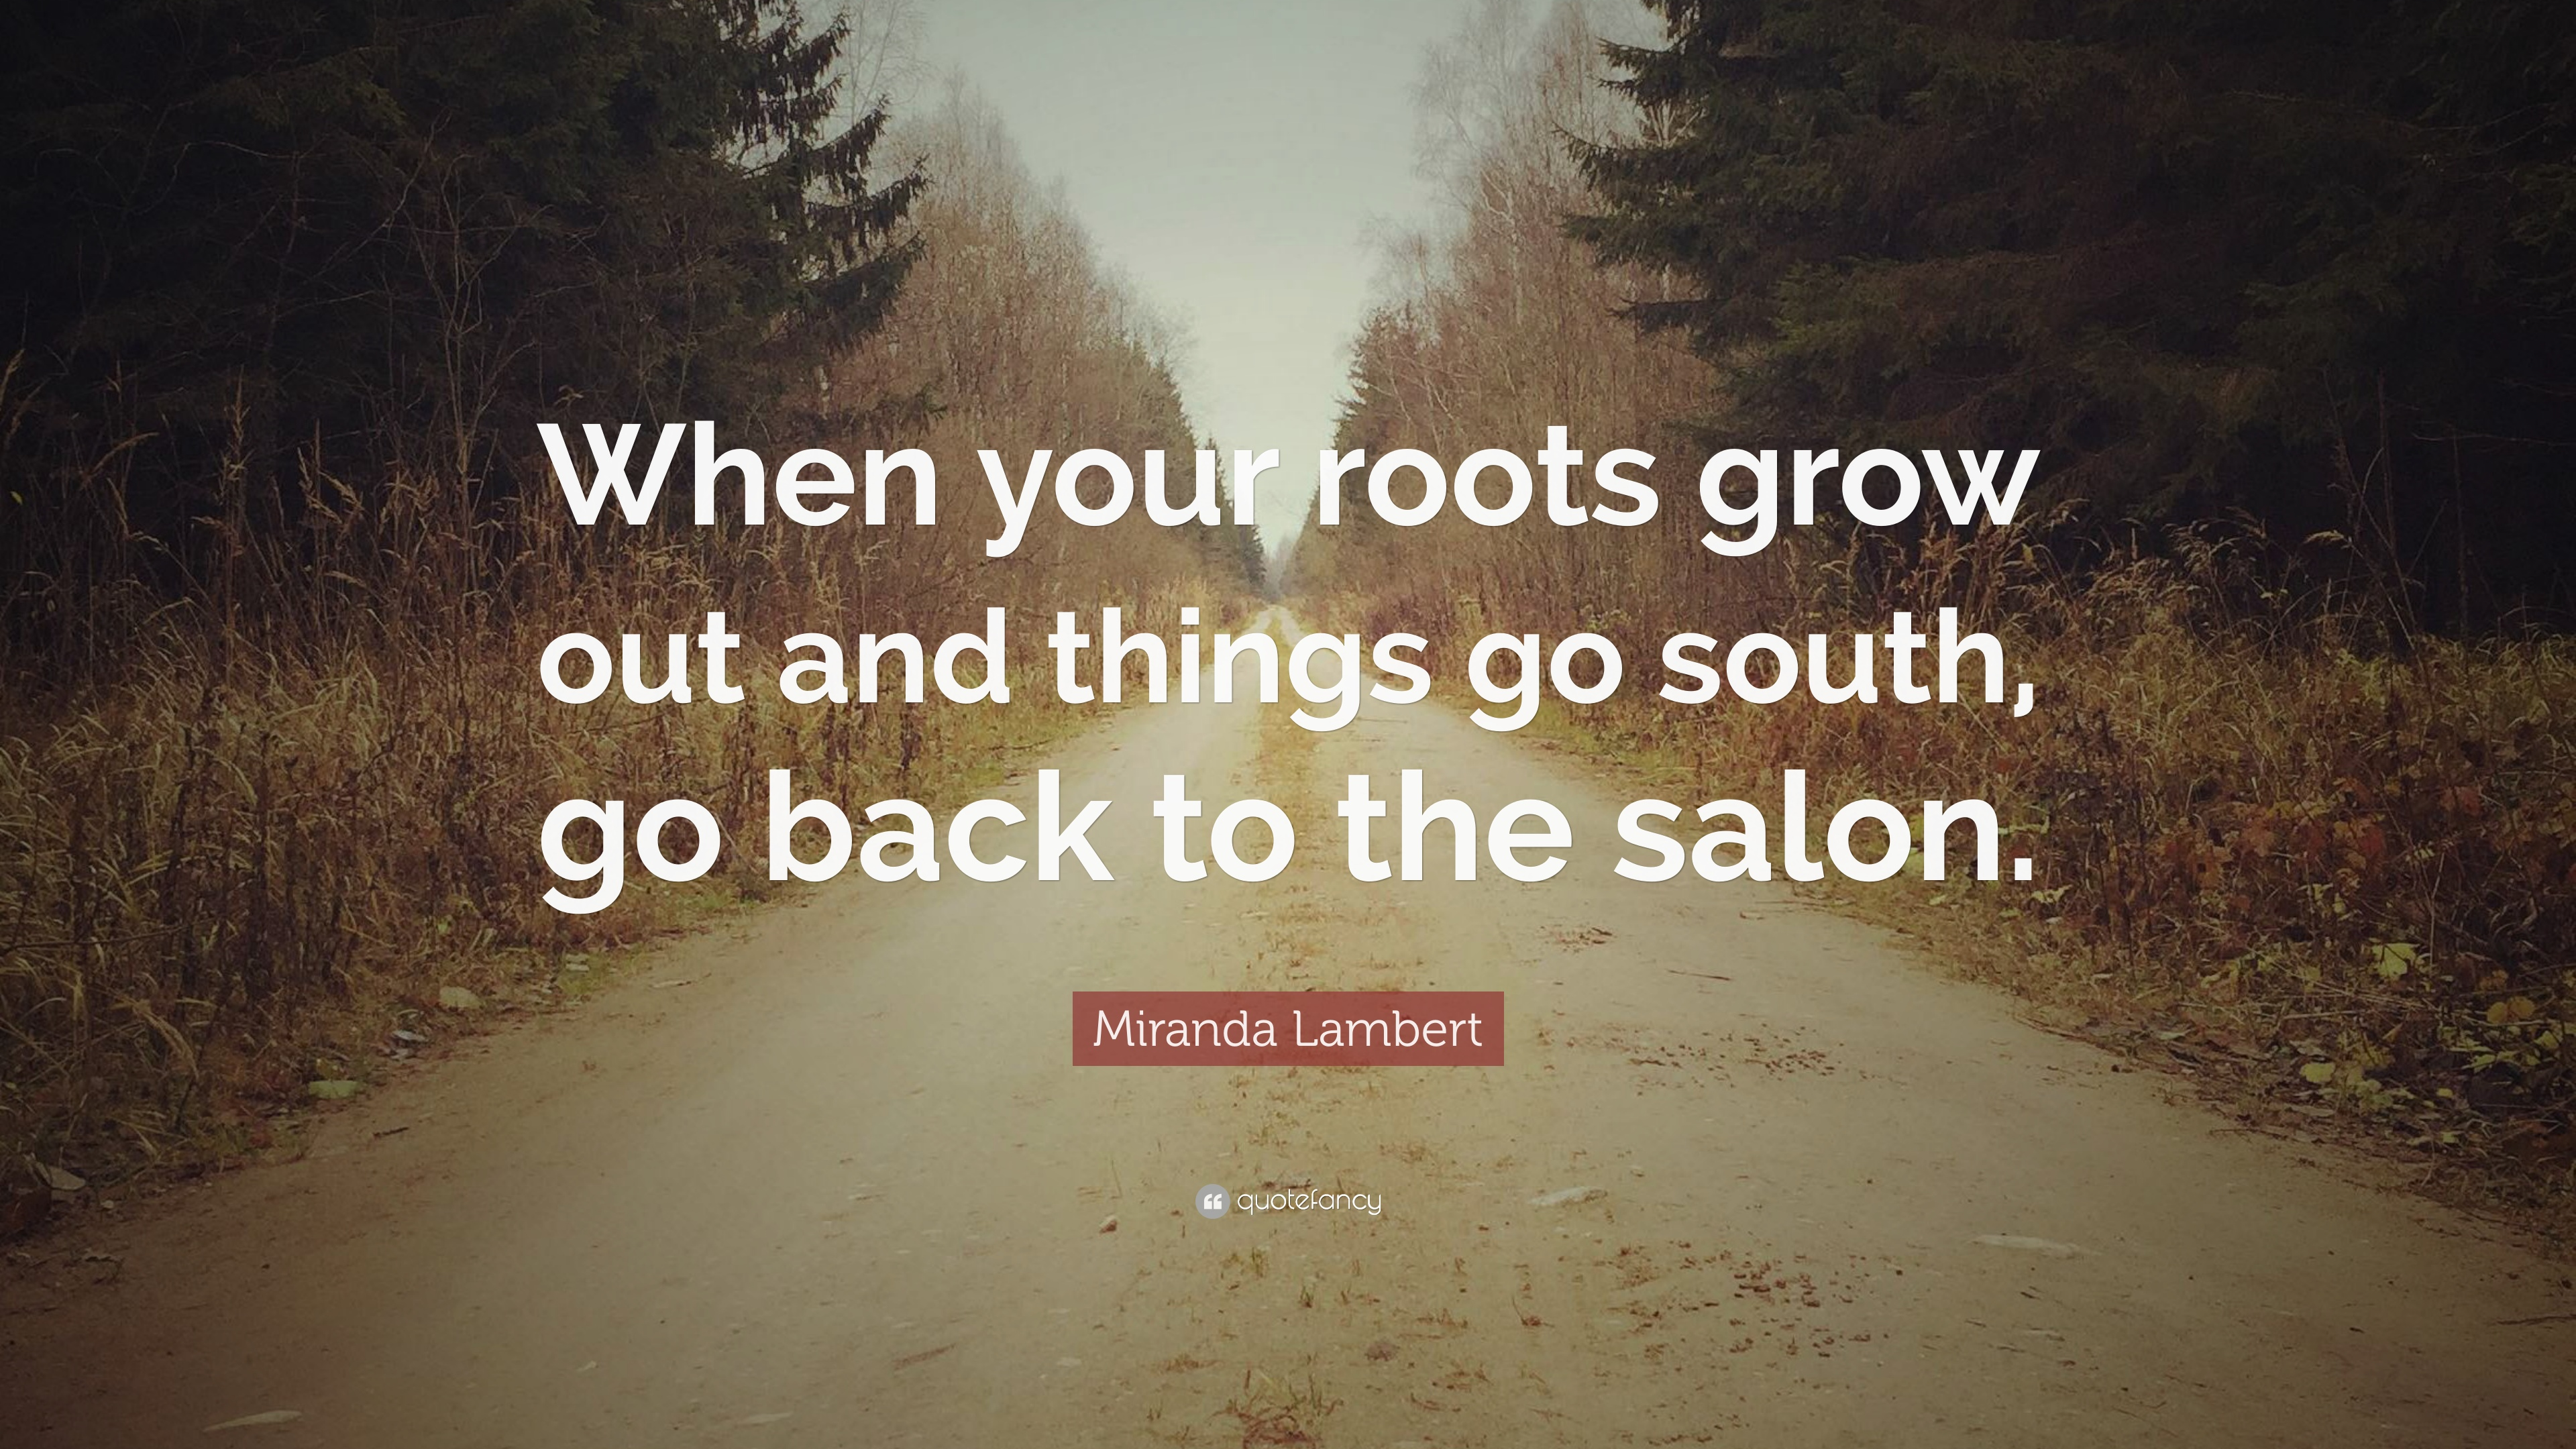 Miranda Lambert Quote When Your Roots Grow Out And Things Go South